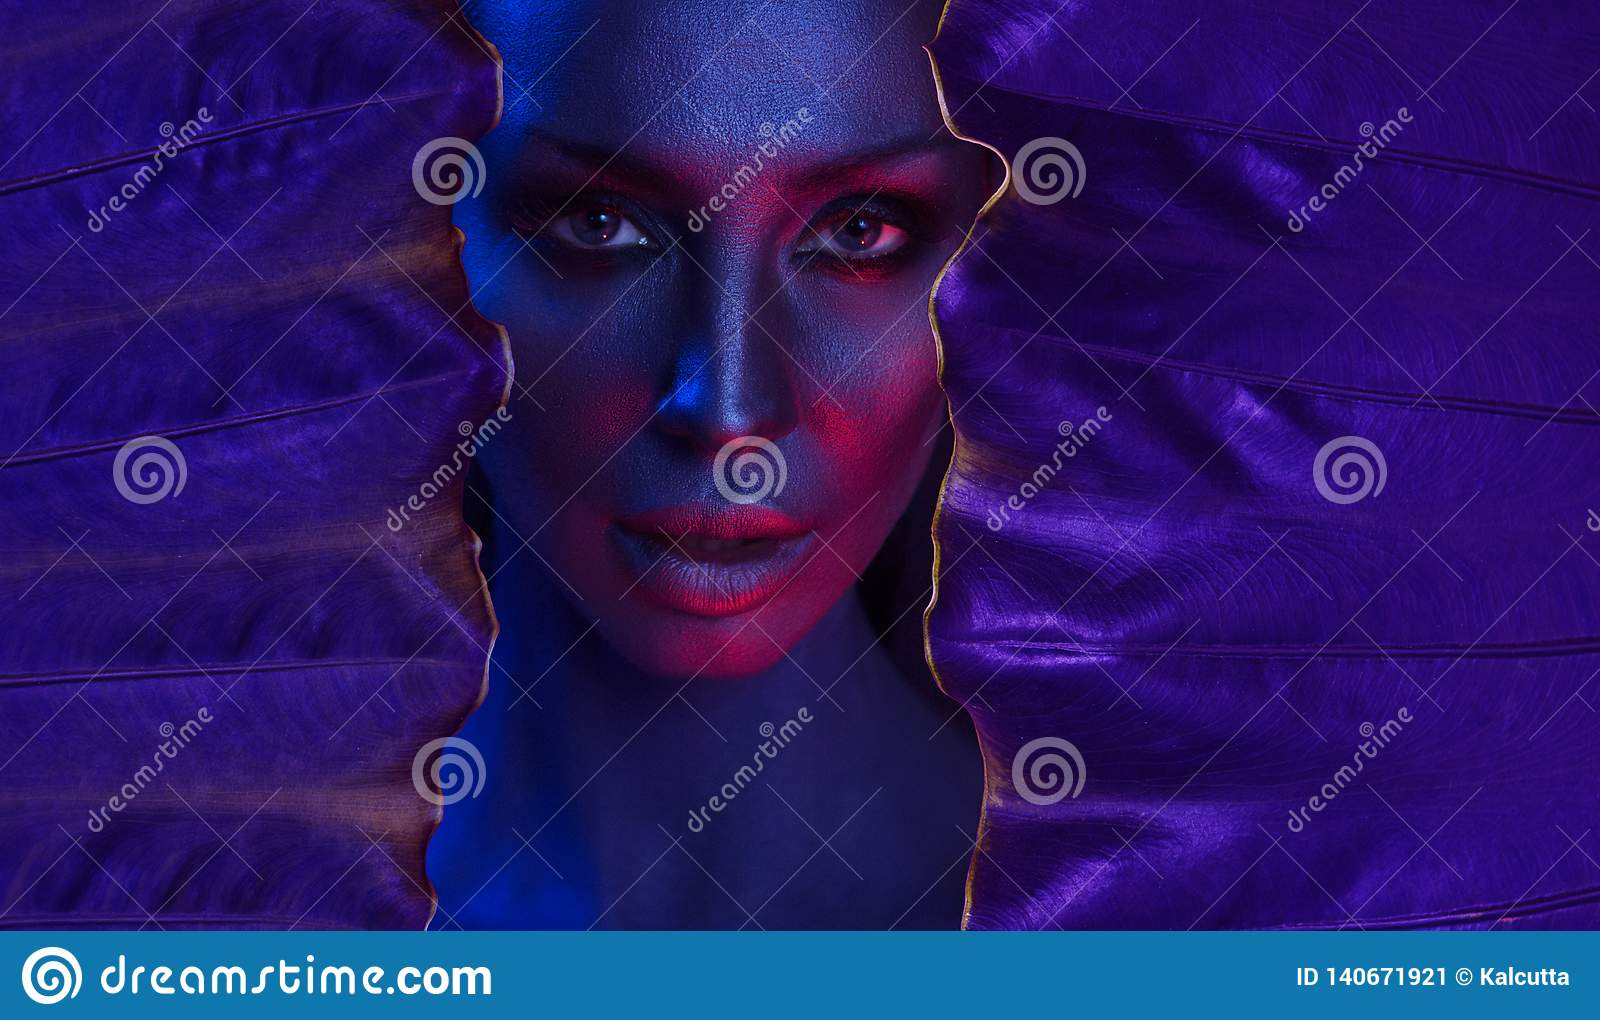 Art neon Portrait of Beautiful Young Woman with glamorous mystical makeup